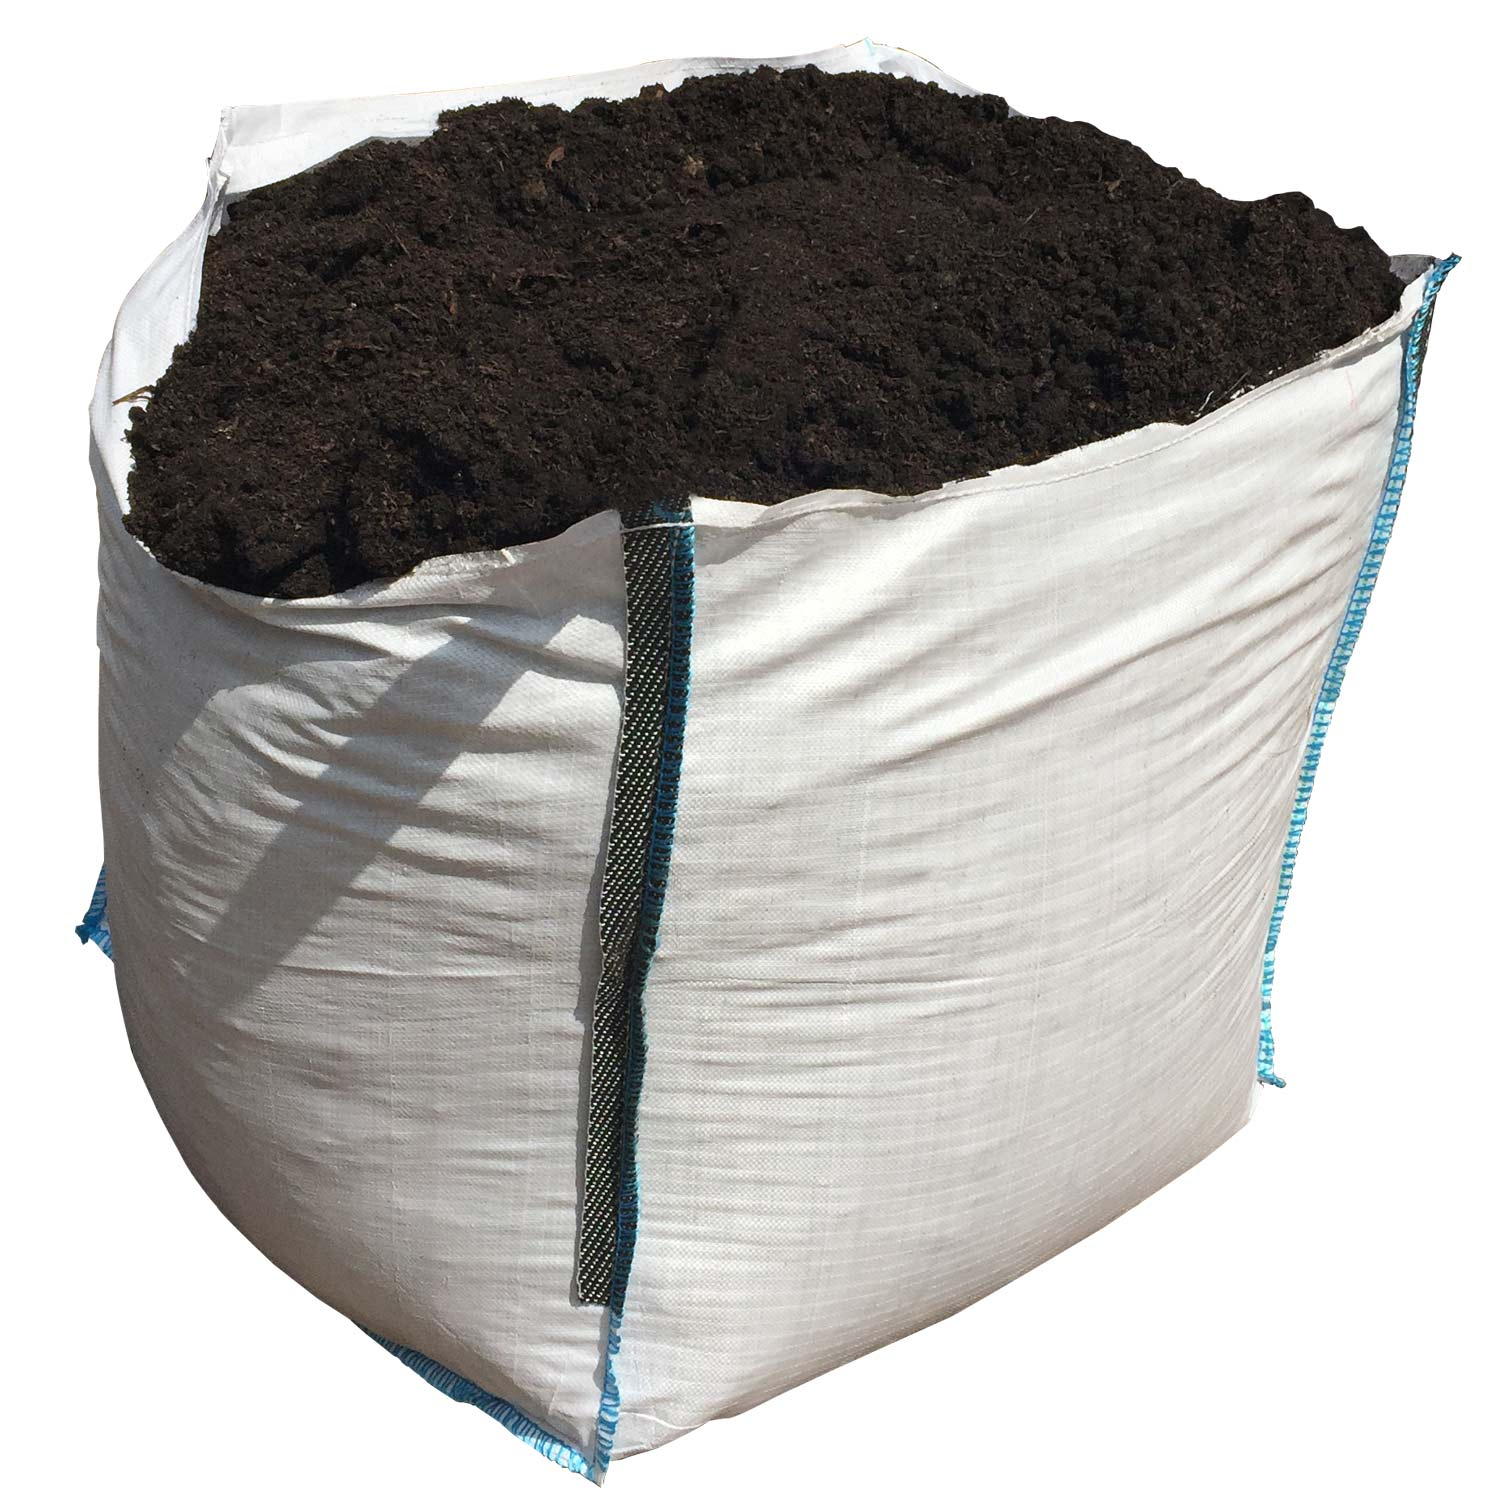 Mushroom compost online soil for Compost soil bags